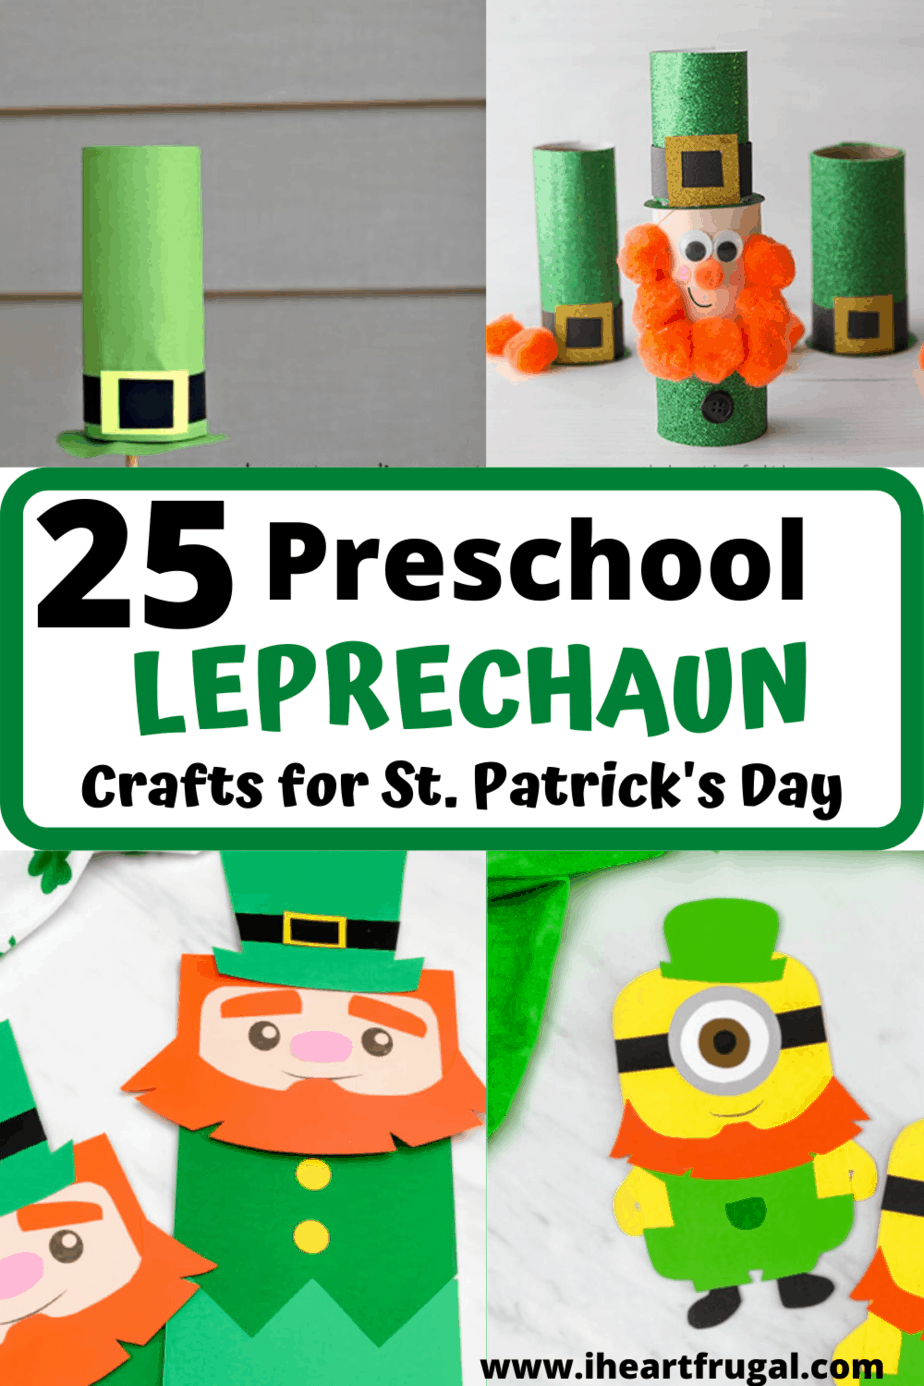 Leprechaun Crafts for Preschool or any age. Kids craft idea. St. Patrick's Day Craft idea #craftsfrokids #stpatricksday #leprechauncrafts